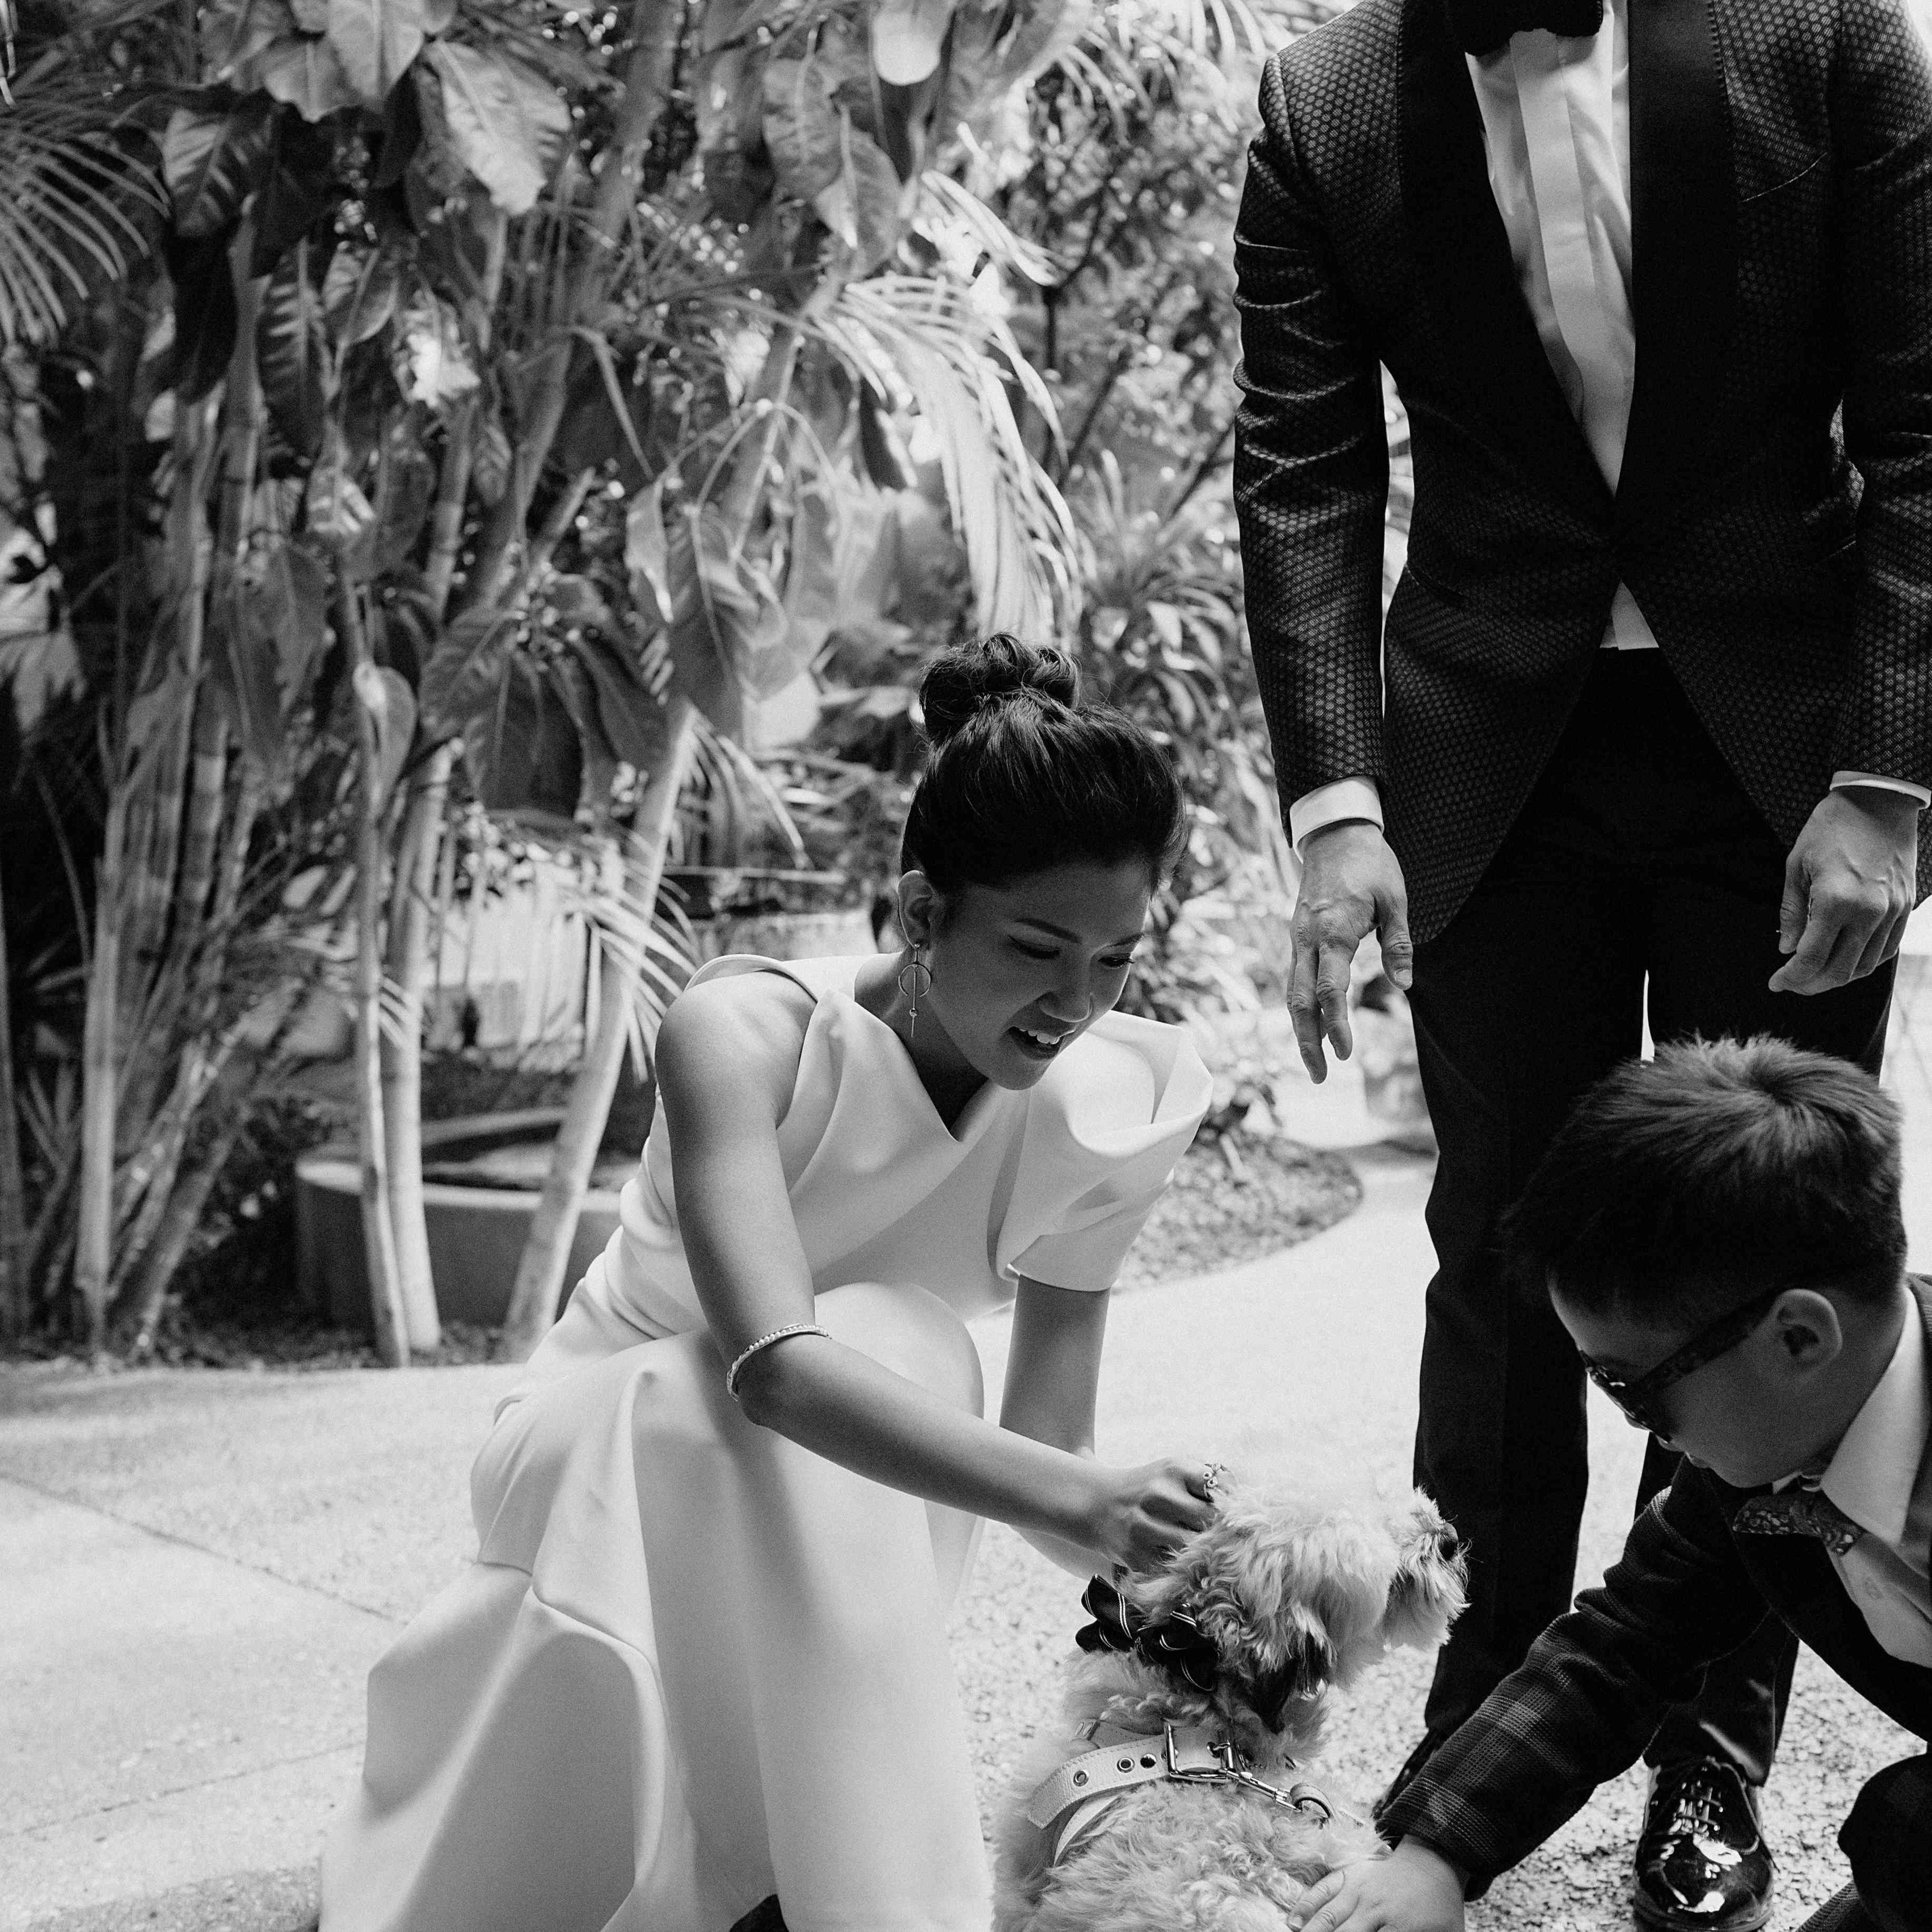 <p>Bride and groom petting dog</p><br><br>